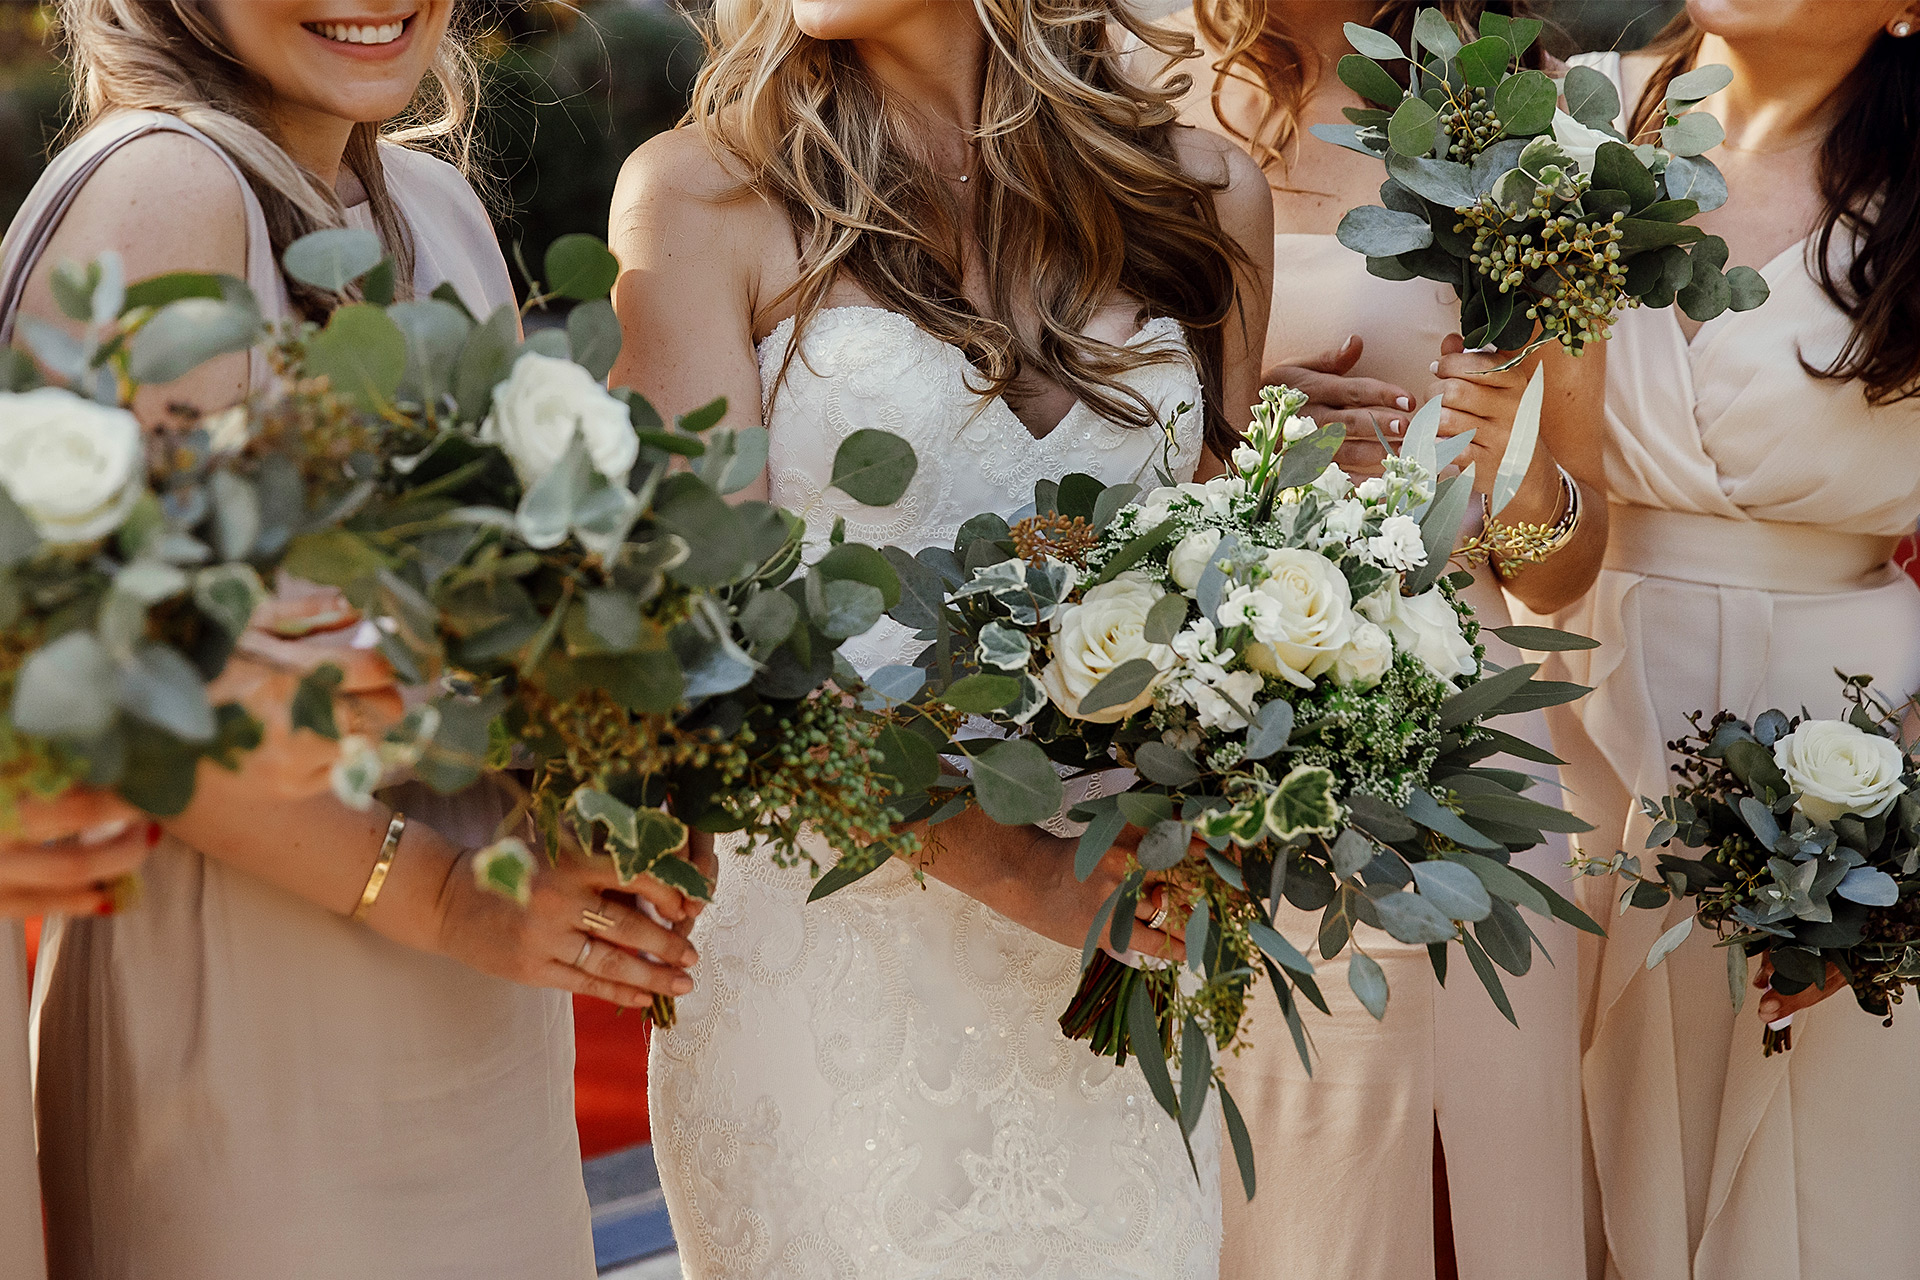 Image of bride and her bridesmaids standing in a line holding bouquets of flowers